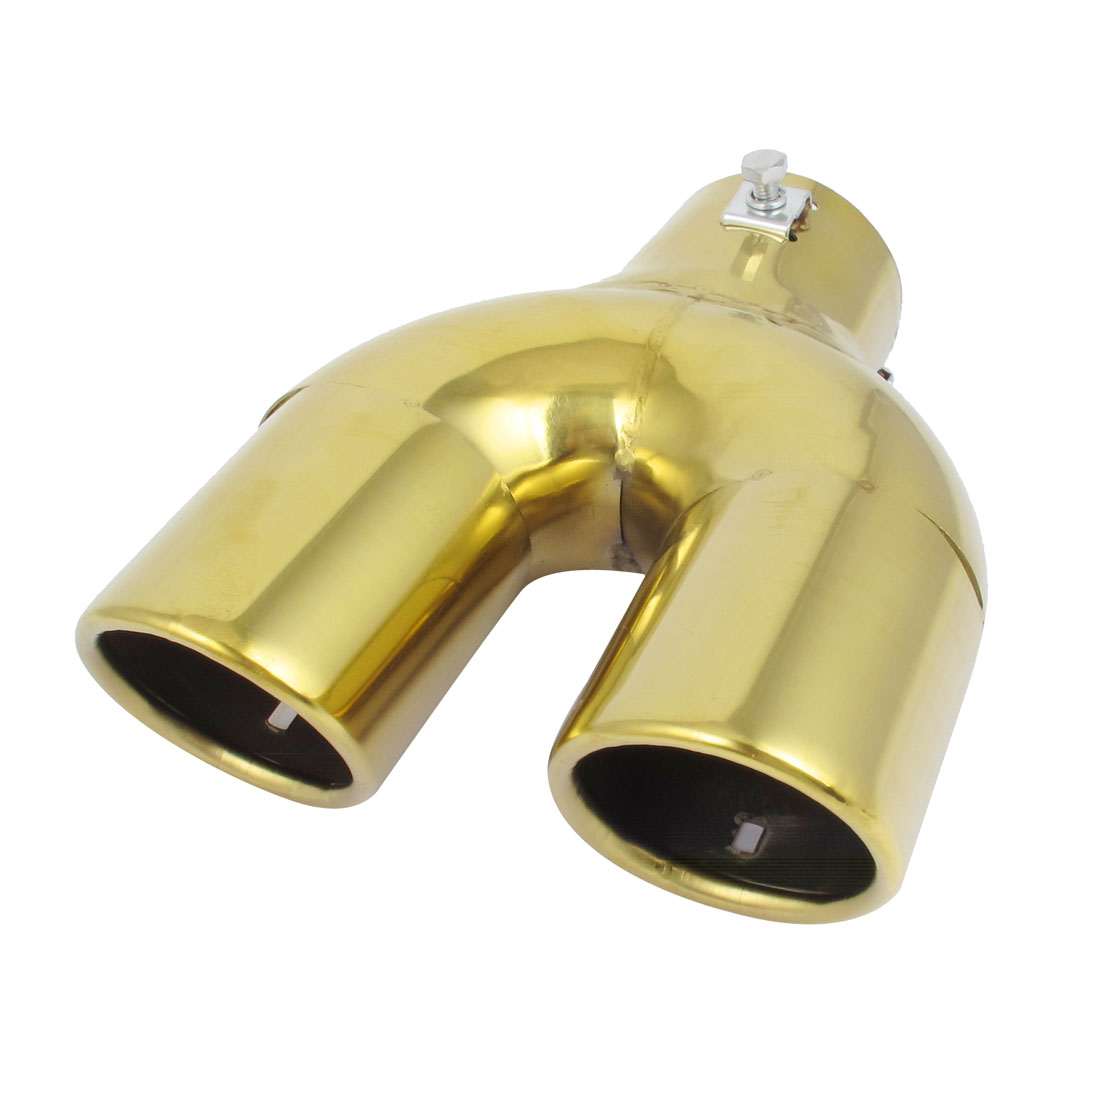 "Car 2.4"" Inlet Round Rolled Exhaust Muffler Pipe Tip Silencer Gold Tone"